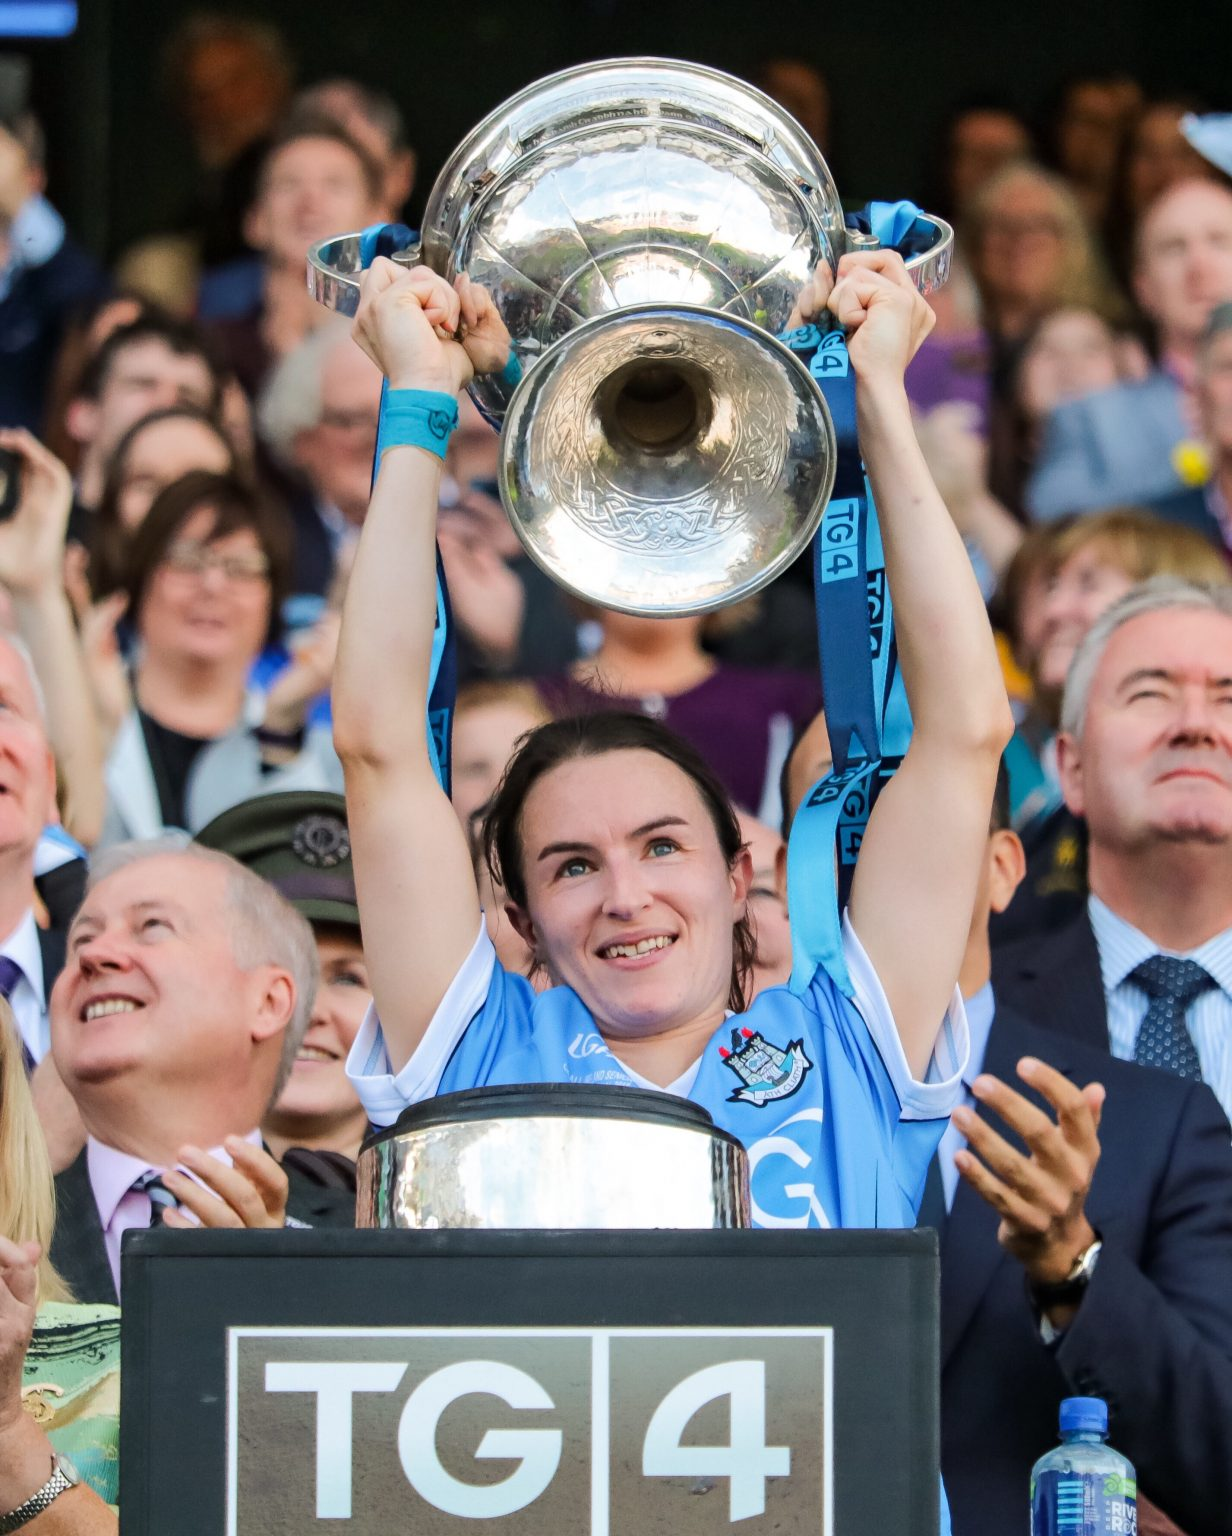 Dublin Senior Ladies Football Captain Sinead Aherne lifts up the Brendan Martin Cup as Dublin Claim Back To Back All Ireland Titles for the first time.